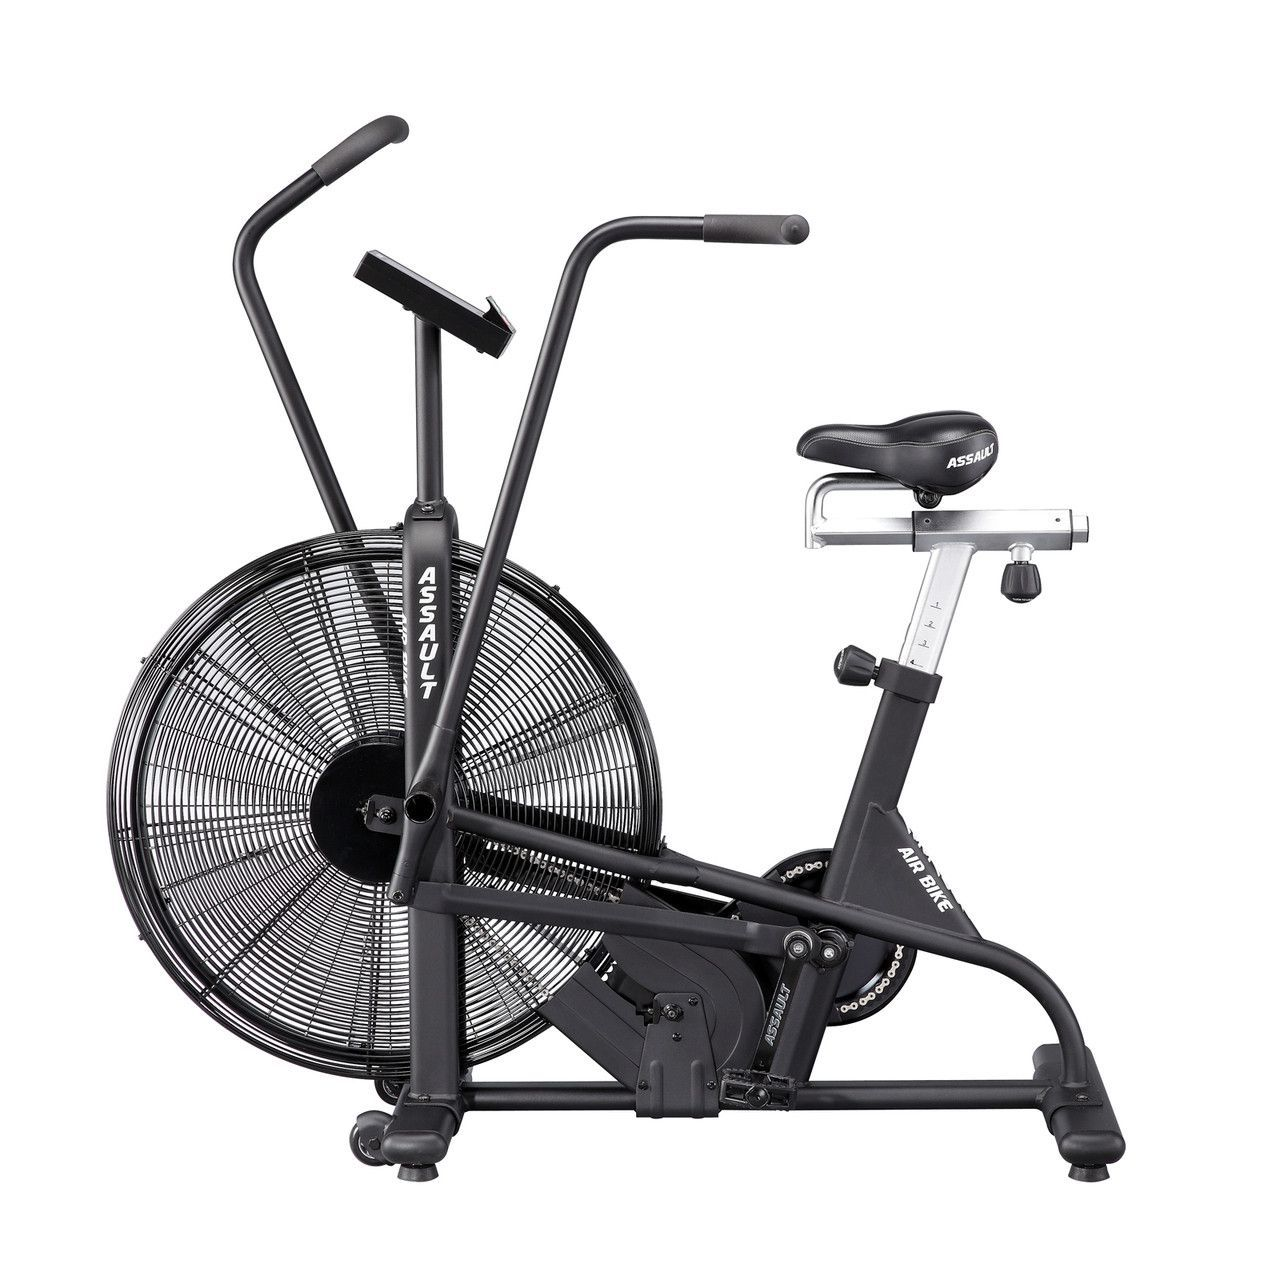 Assault Airbike Best Exercise Bike Bike Trainer Best Cardio